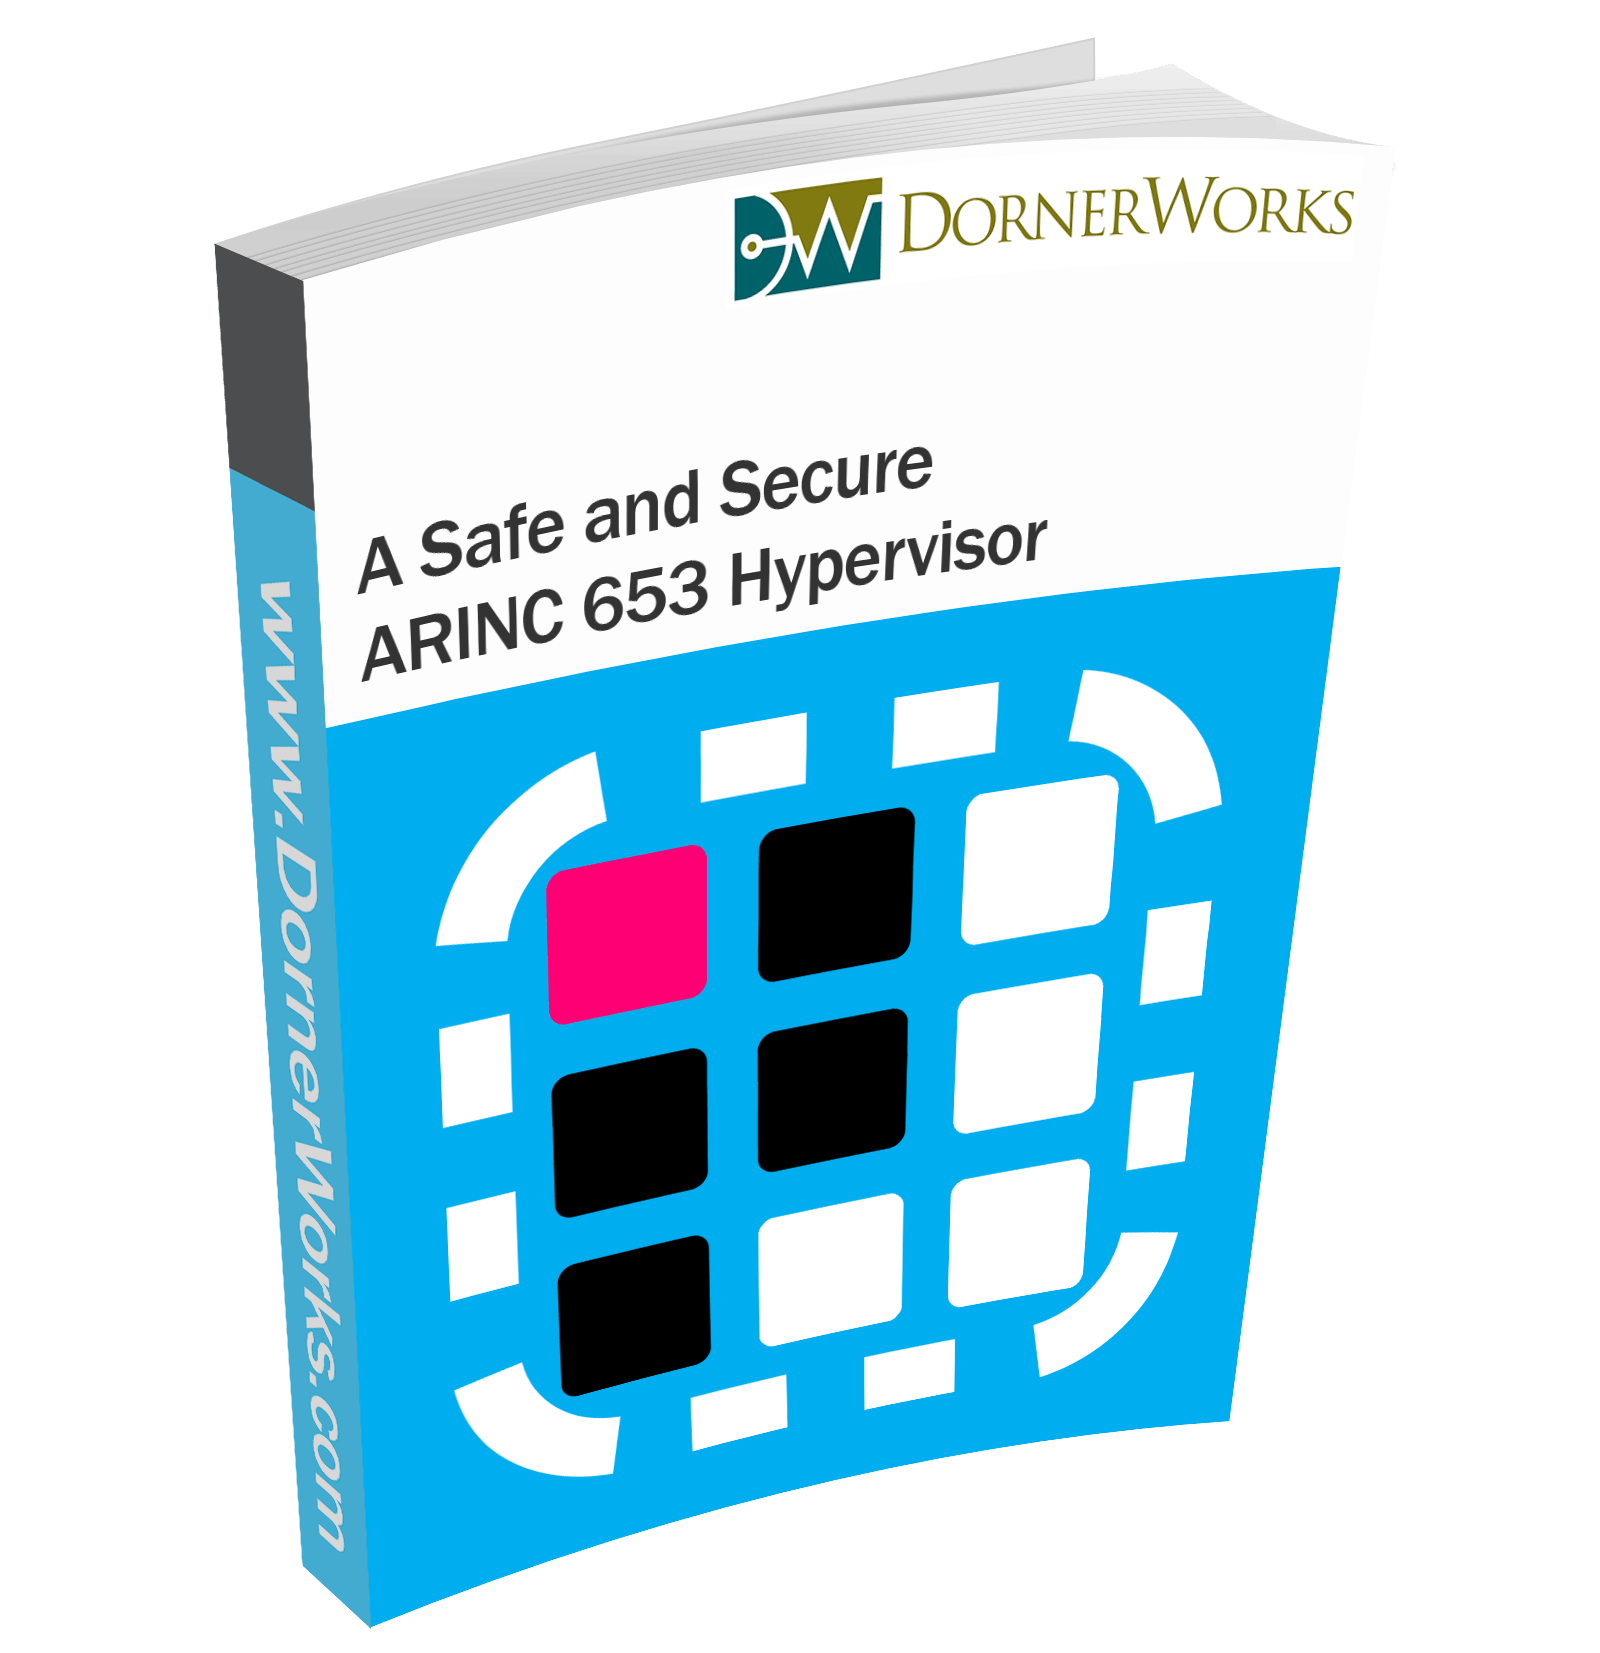 A Safe and Secure ARINC 653 Hypervisor